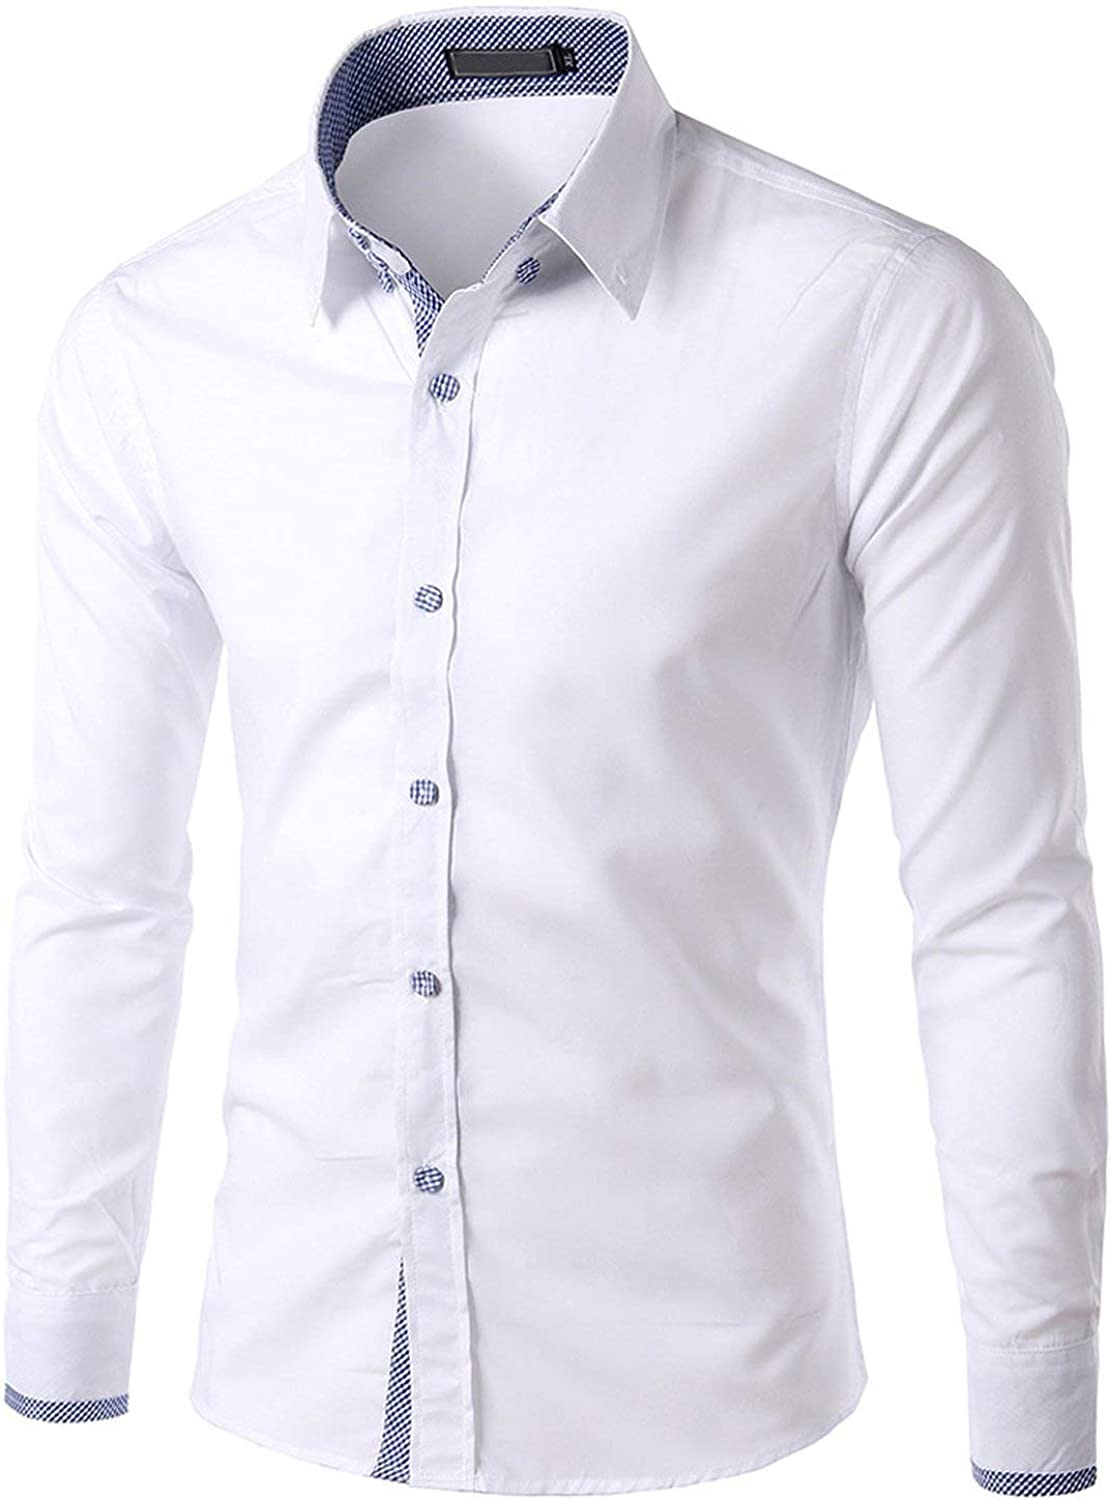 Mens New Recreational Button Long Sleeve Shirt Fashion Pure Long Sleeve Top,White,M,C